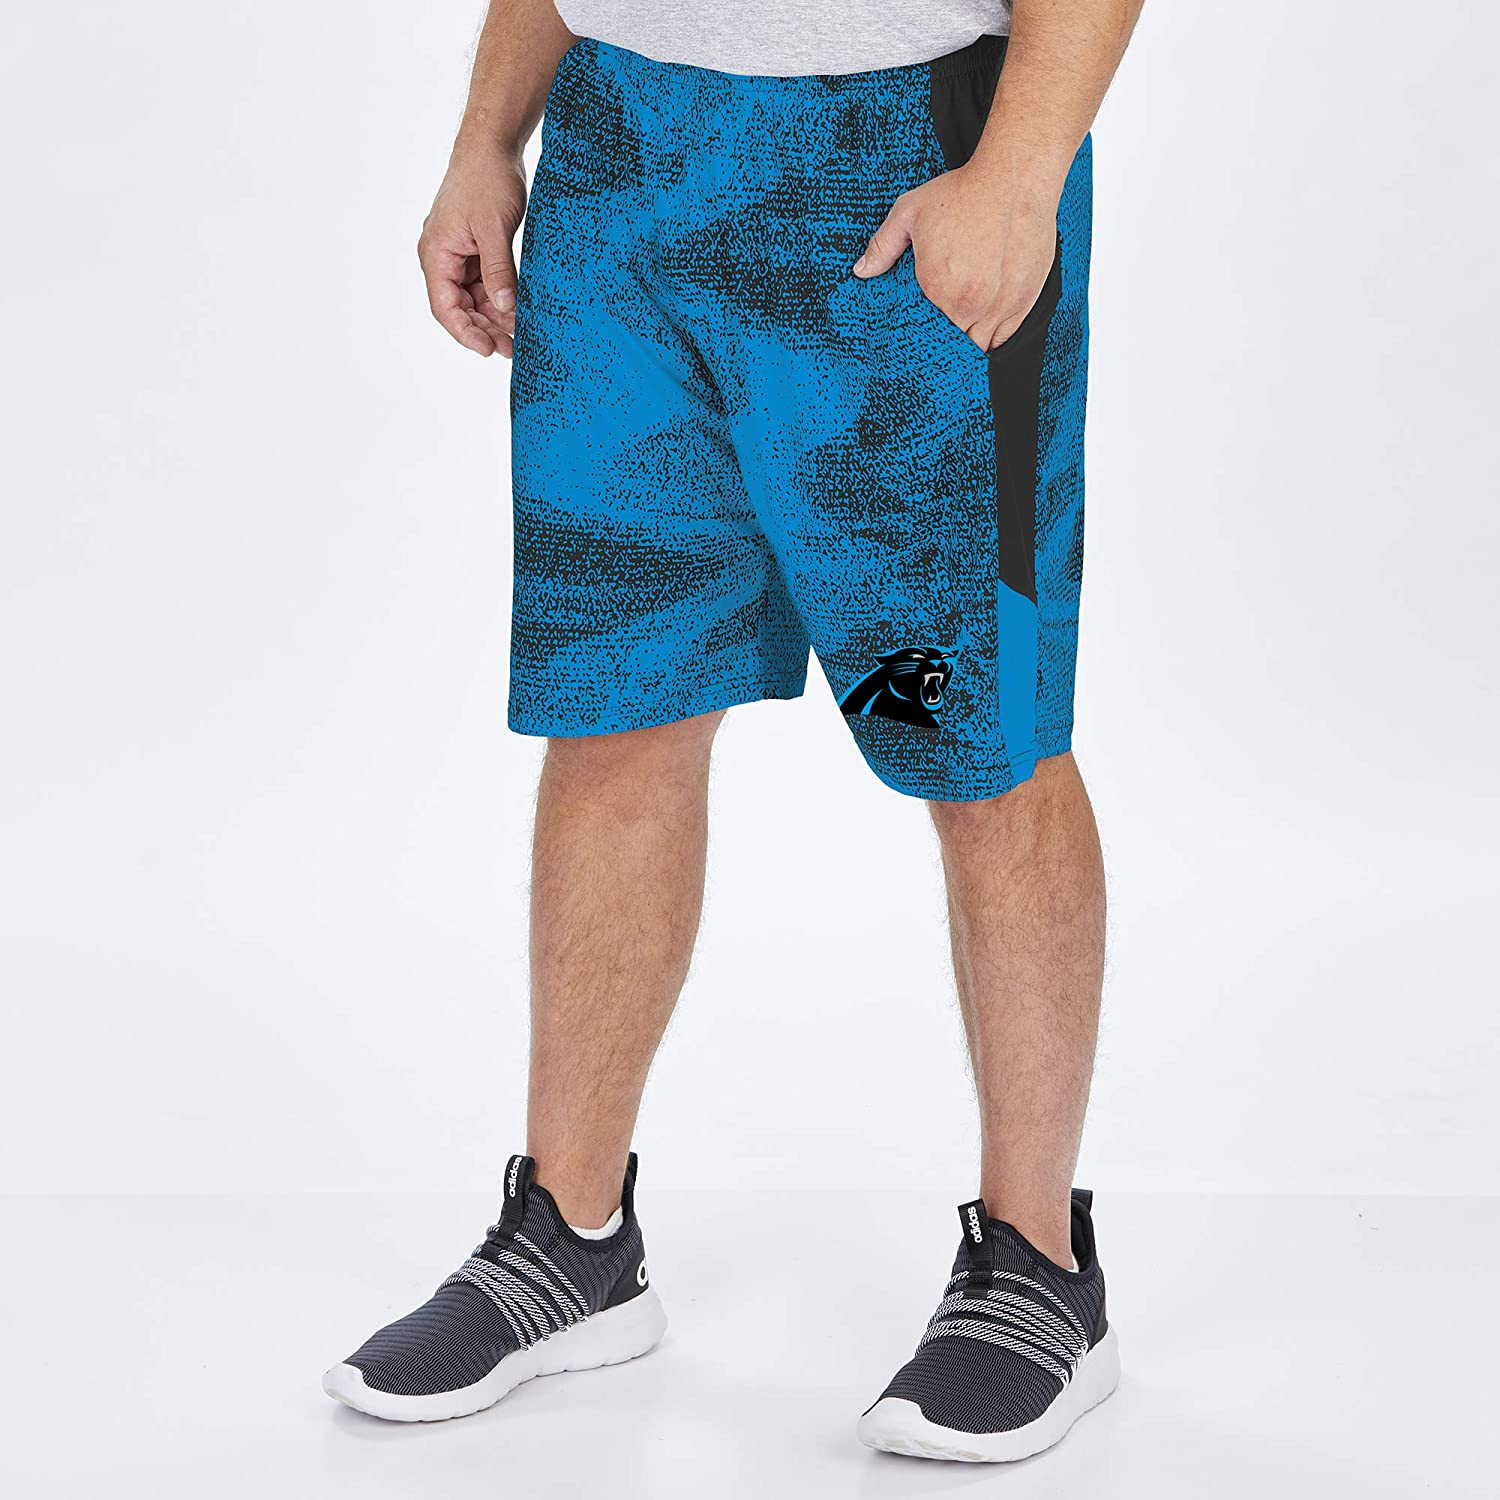 Zubaz NFL Mens Static Shorts